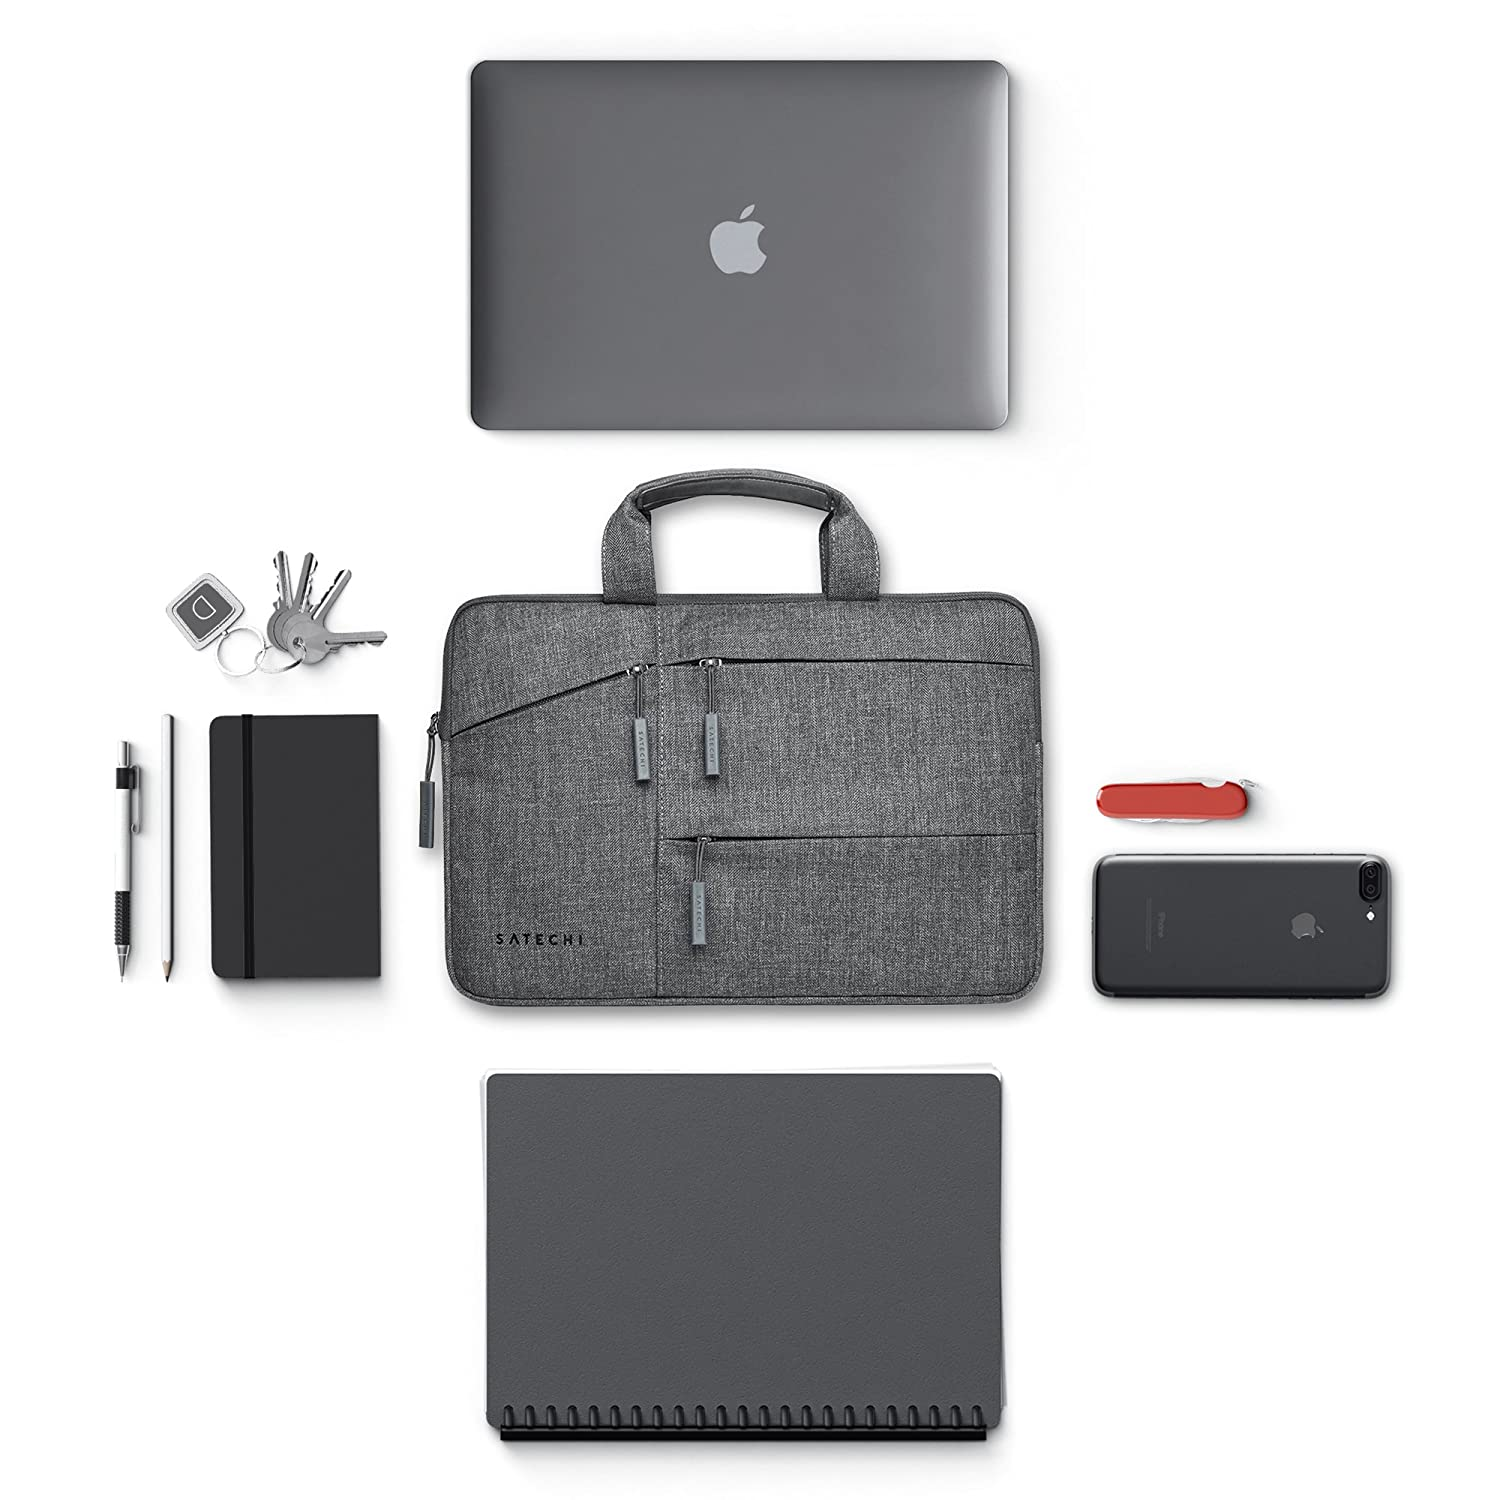 Satechi Water-Resistant Laptop Bag Carrying Case w/Pockets - Compatible with MacBook Pro 15, HP Spectre x360 15, Dell XPS 15 and More (15 Inch) HP Spectre x360 15 ST-LTB15